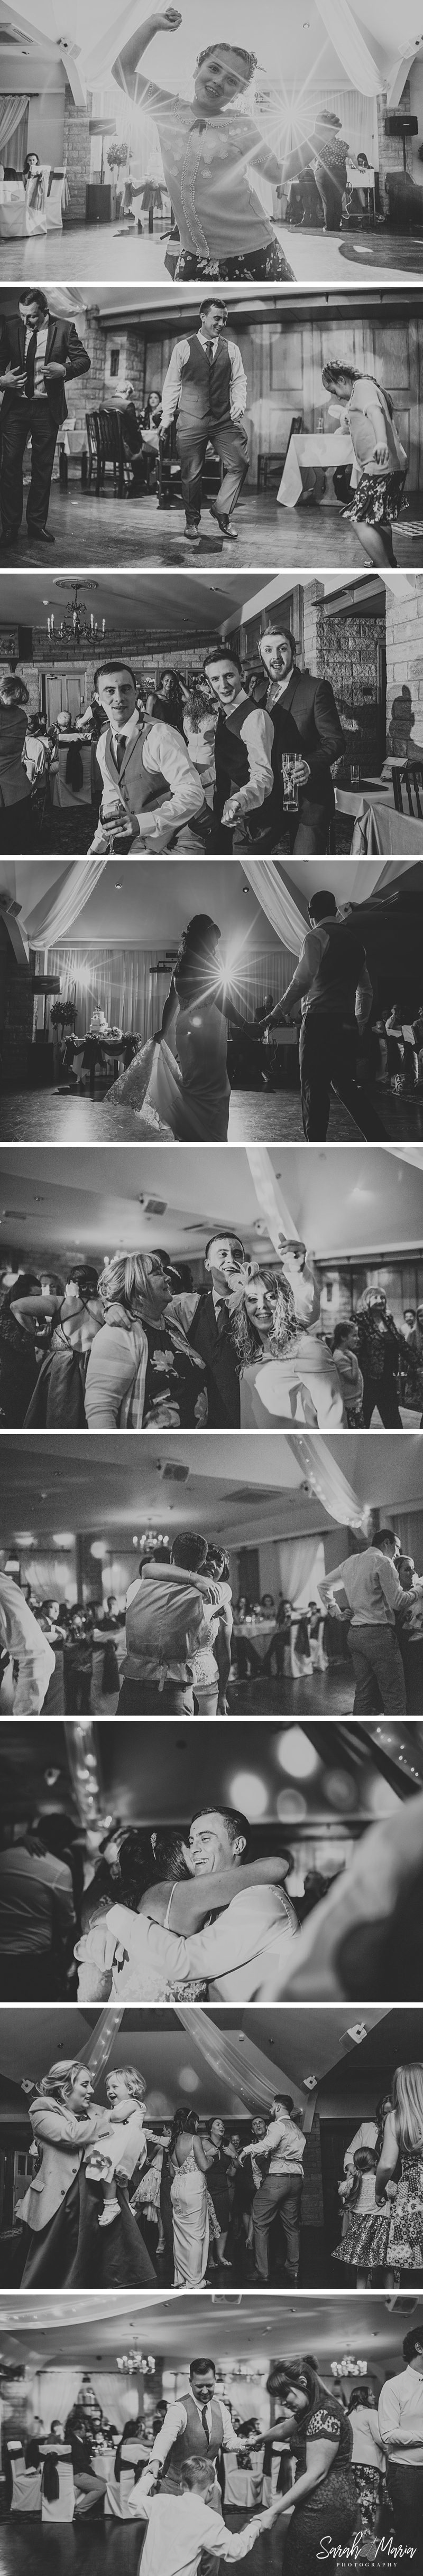 black and white photographs of wedding guests having fun and dancing